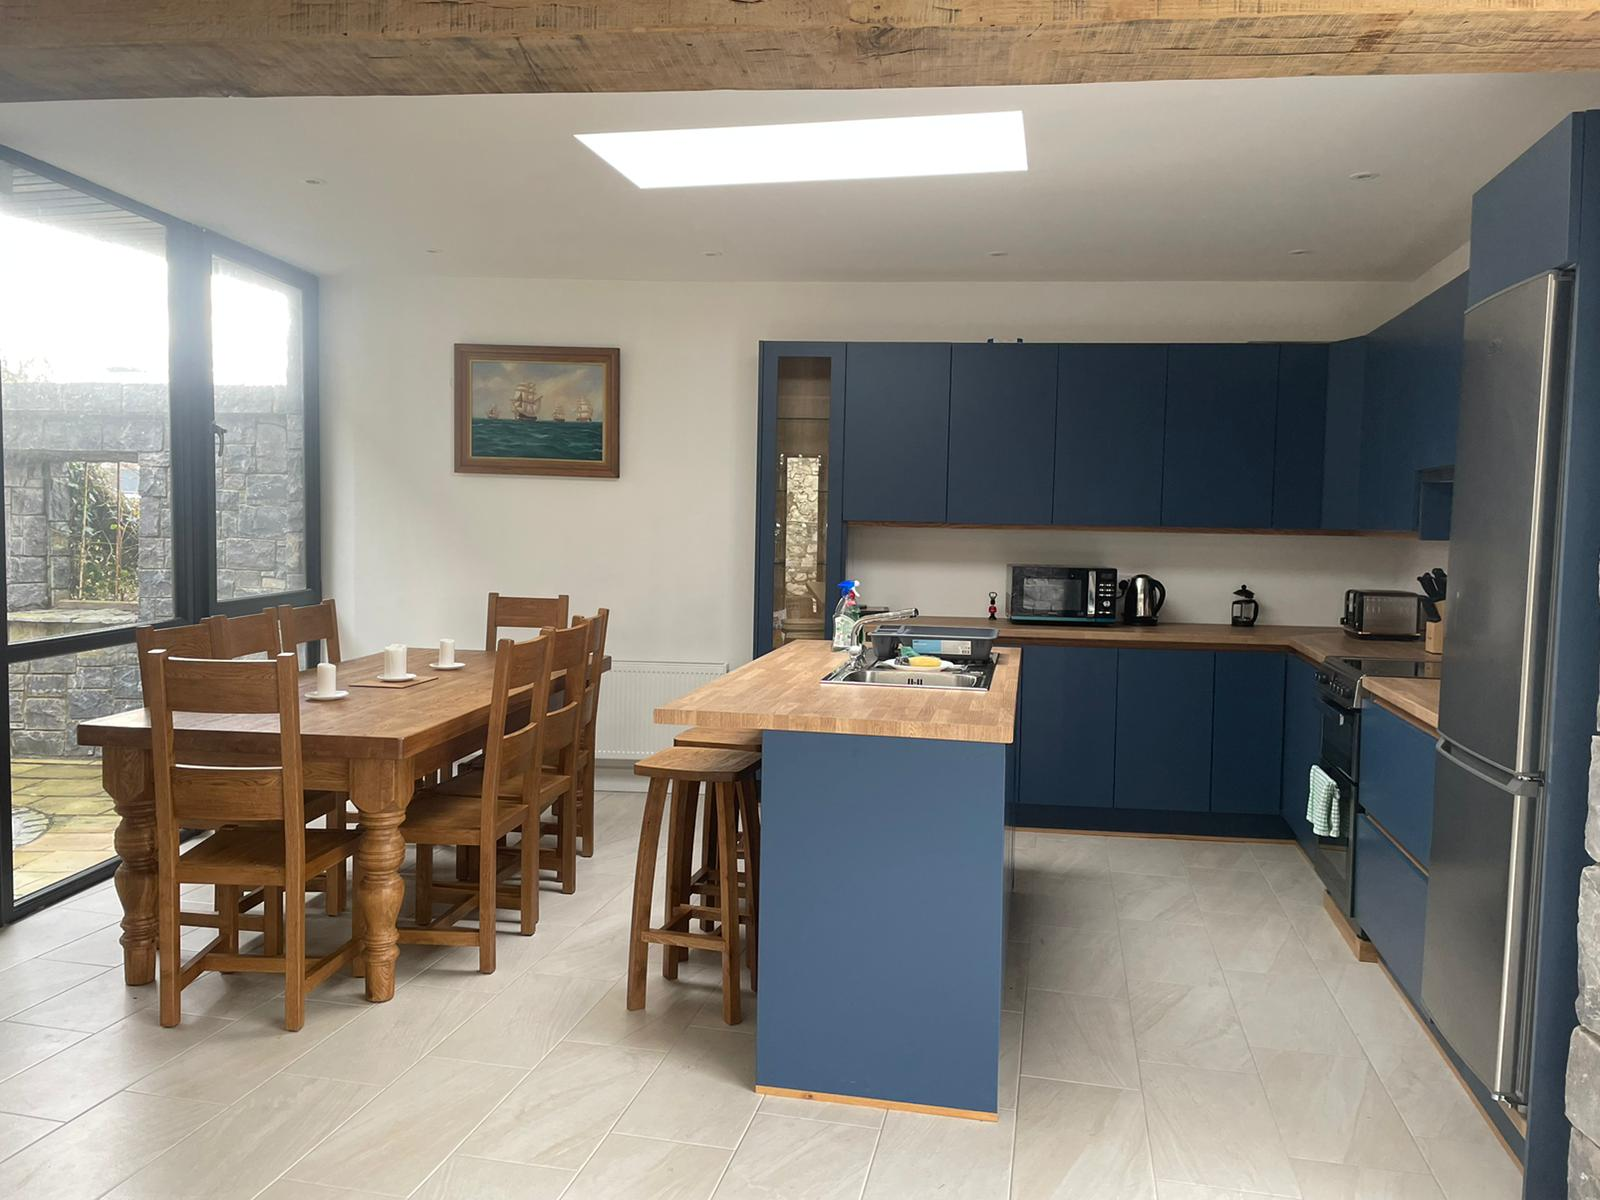 Kitchen and dining area from another angle at Heron Brook Lodge - Luxury Stay